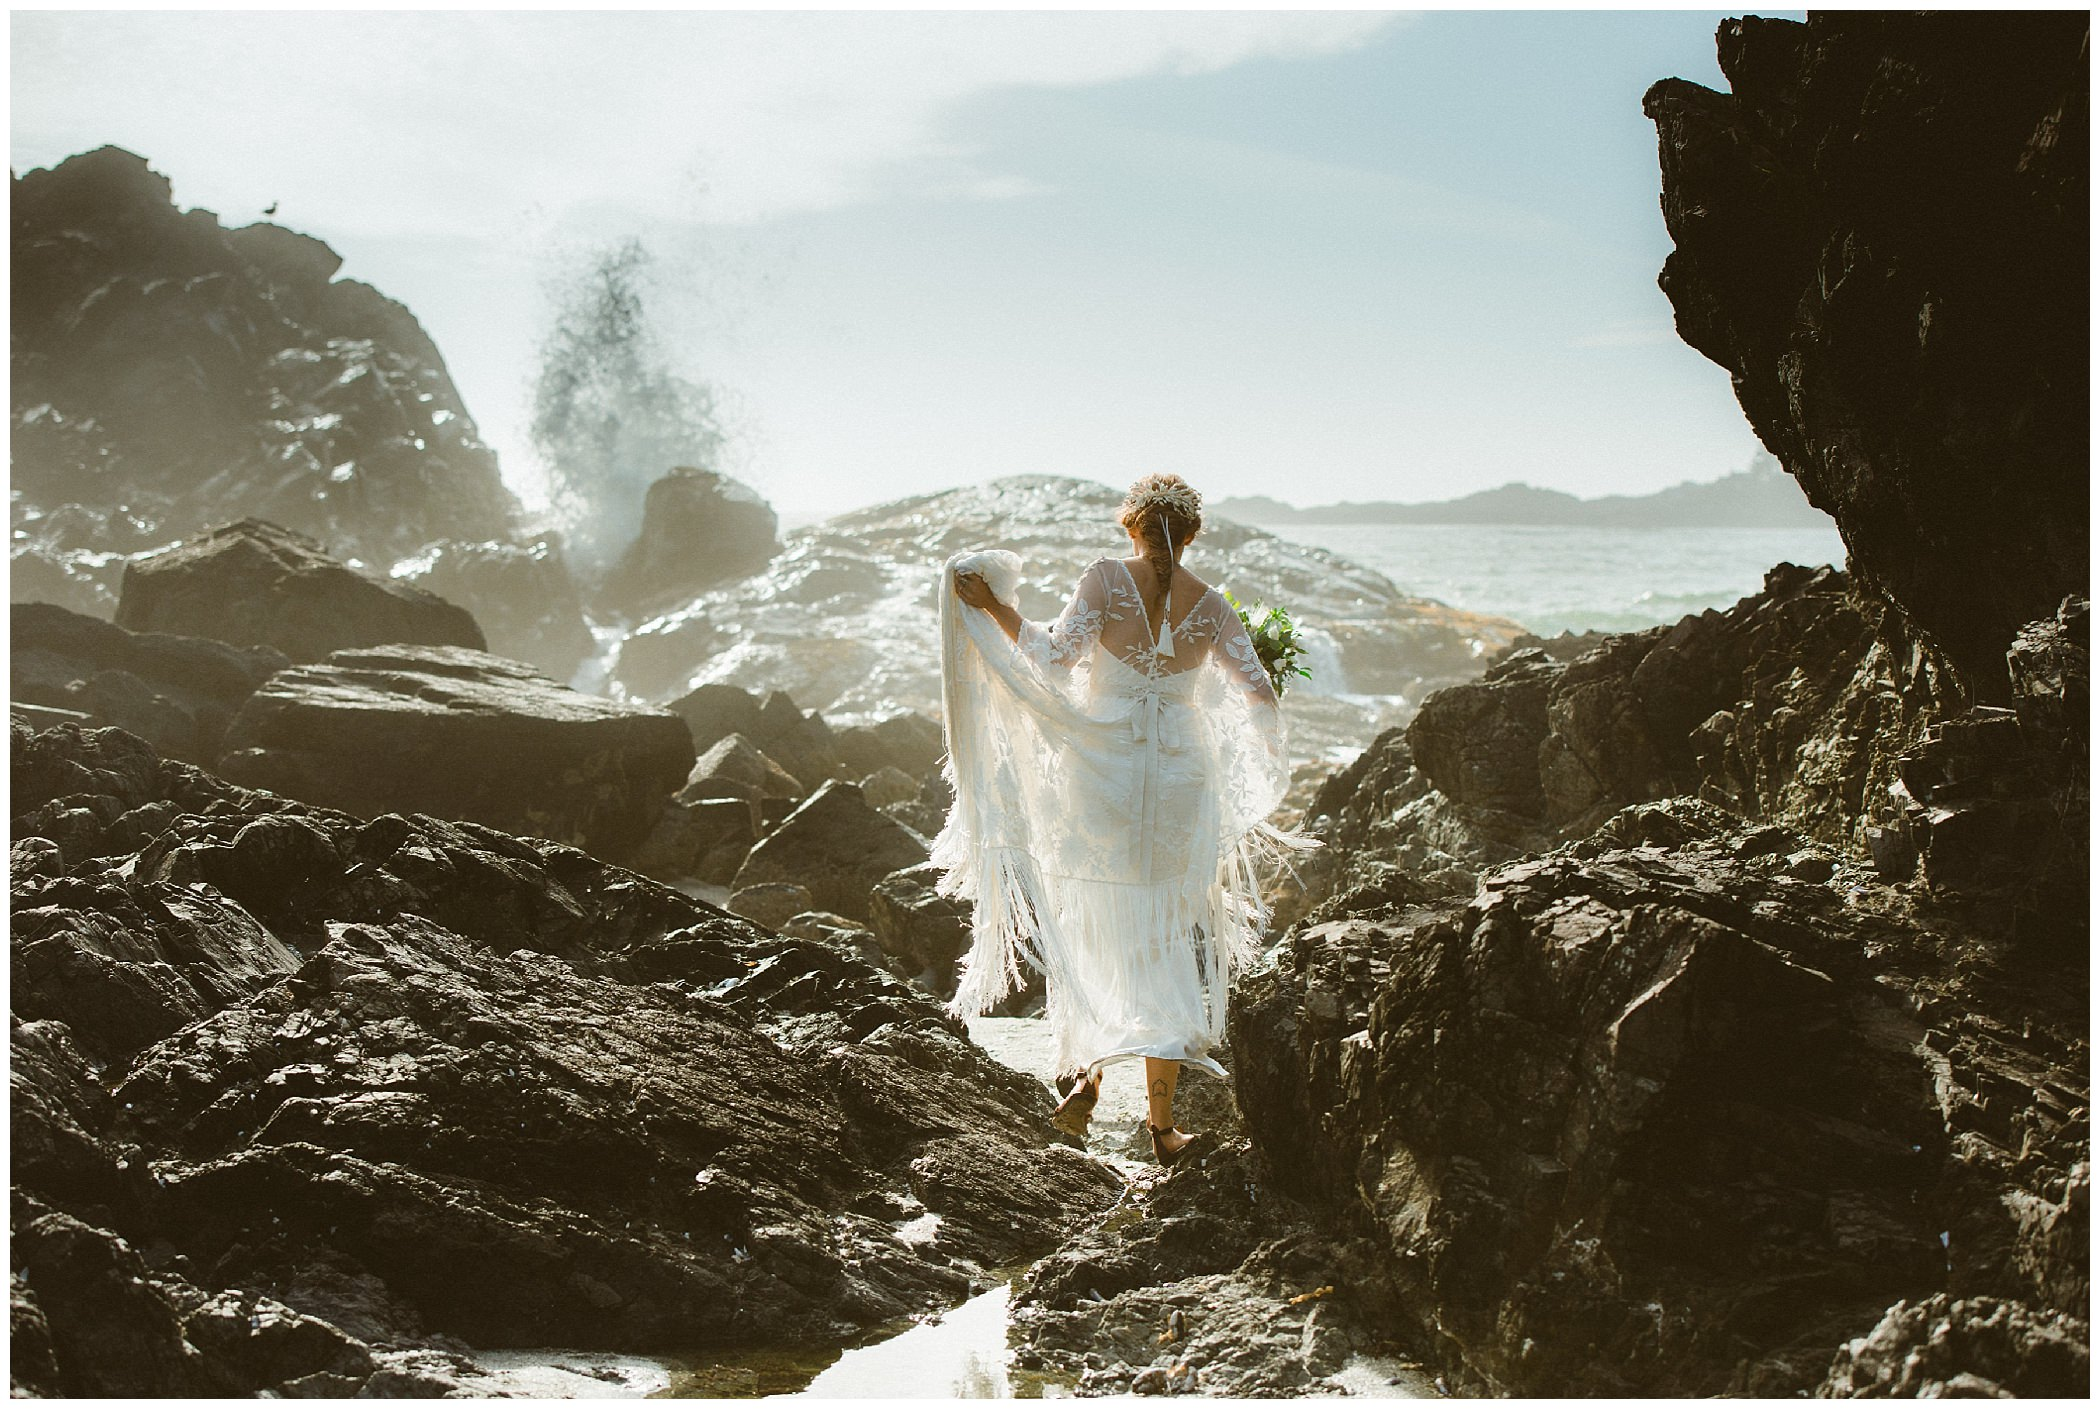 bride walking through rocks during beach wedding in Tofino at Pacific Sands resort, Tofino wedding photographer Ronnie Lee Hill